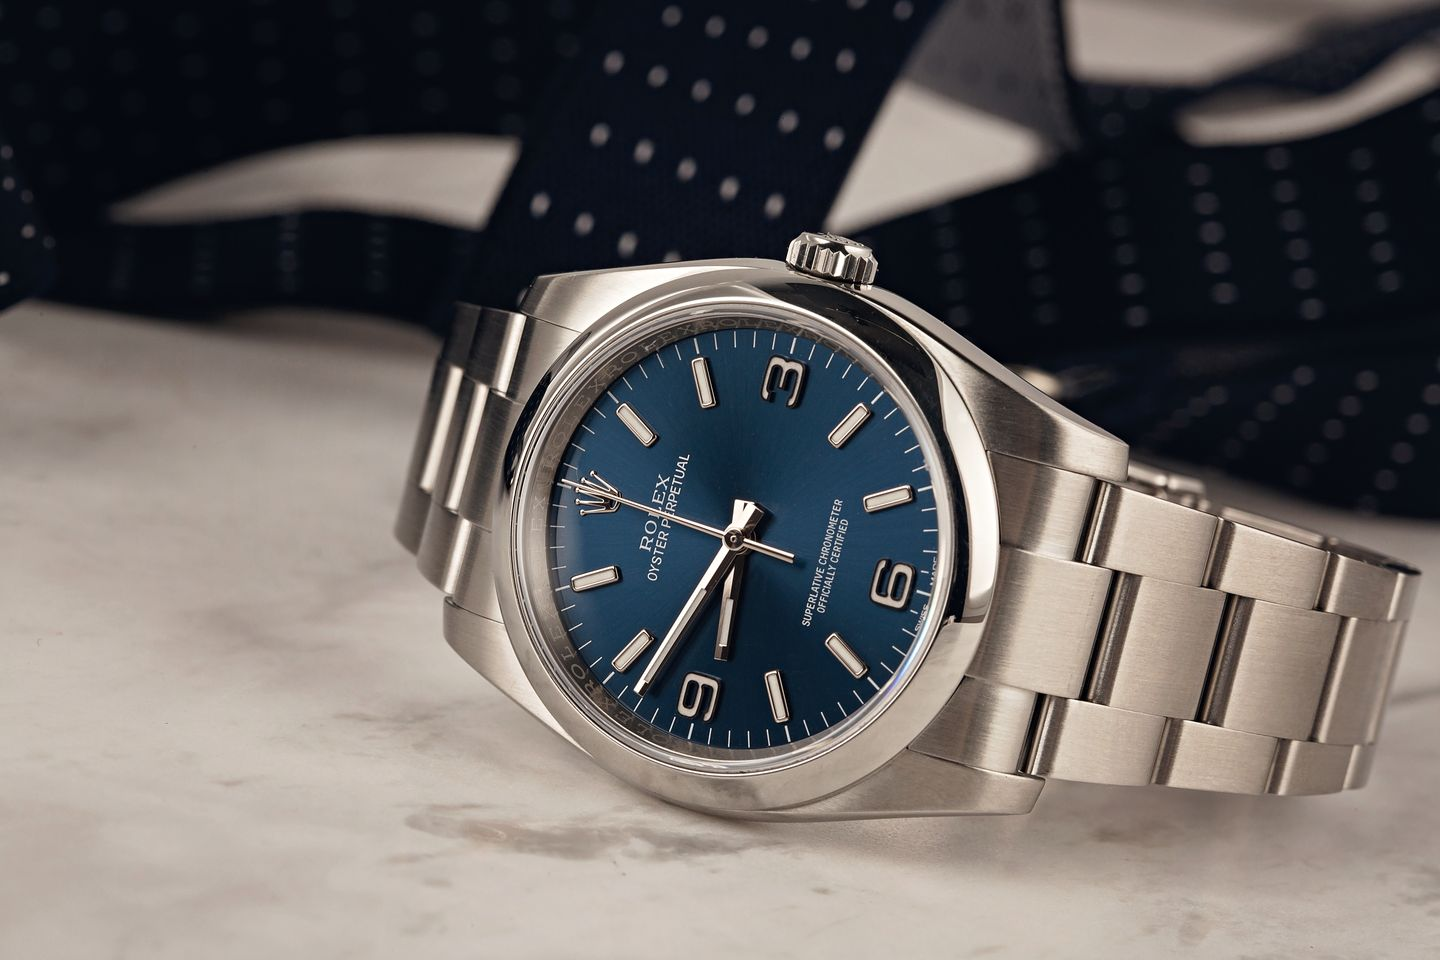 Rolex Watches Blue Dial Shopping Guide Oyster Perpetual